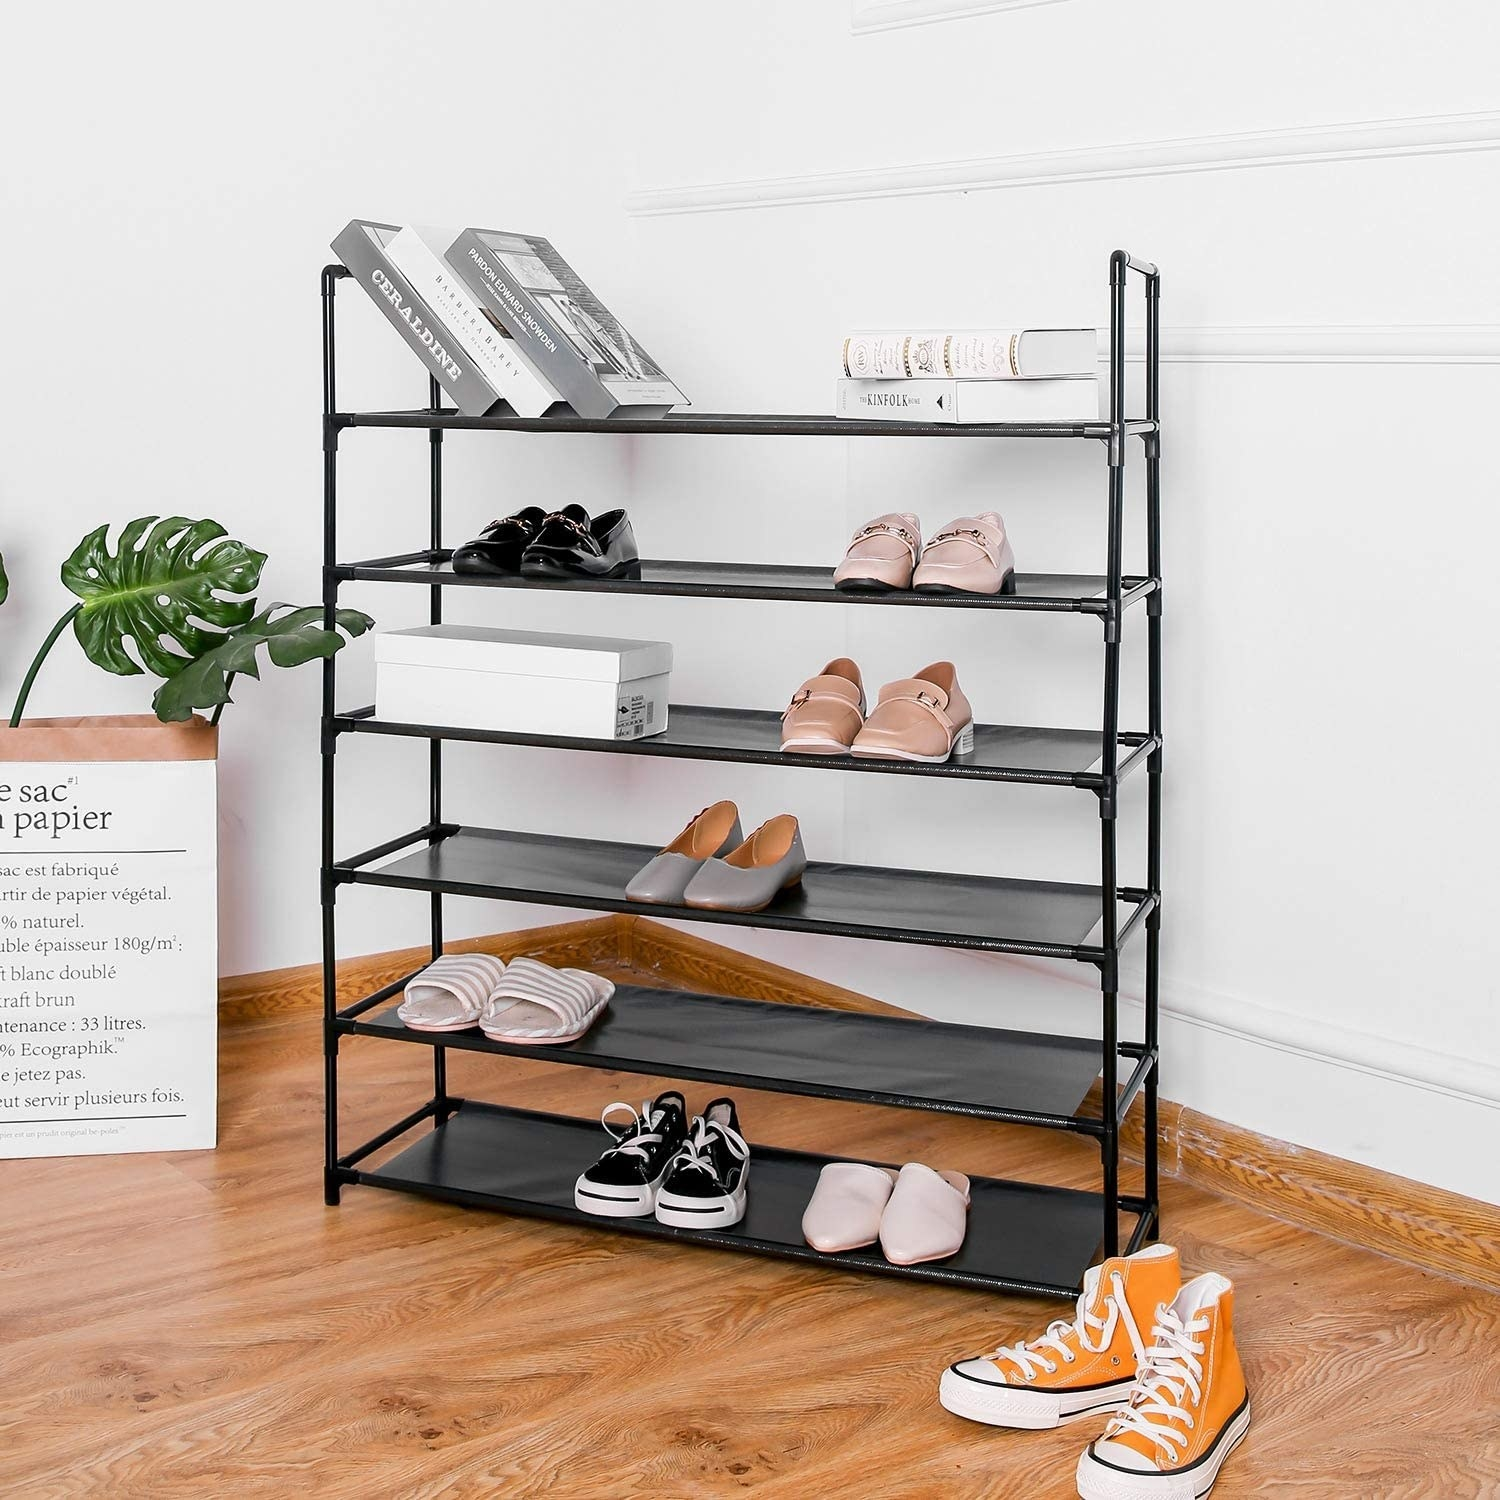 A large shoe rack with different types of footwear on each row